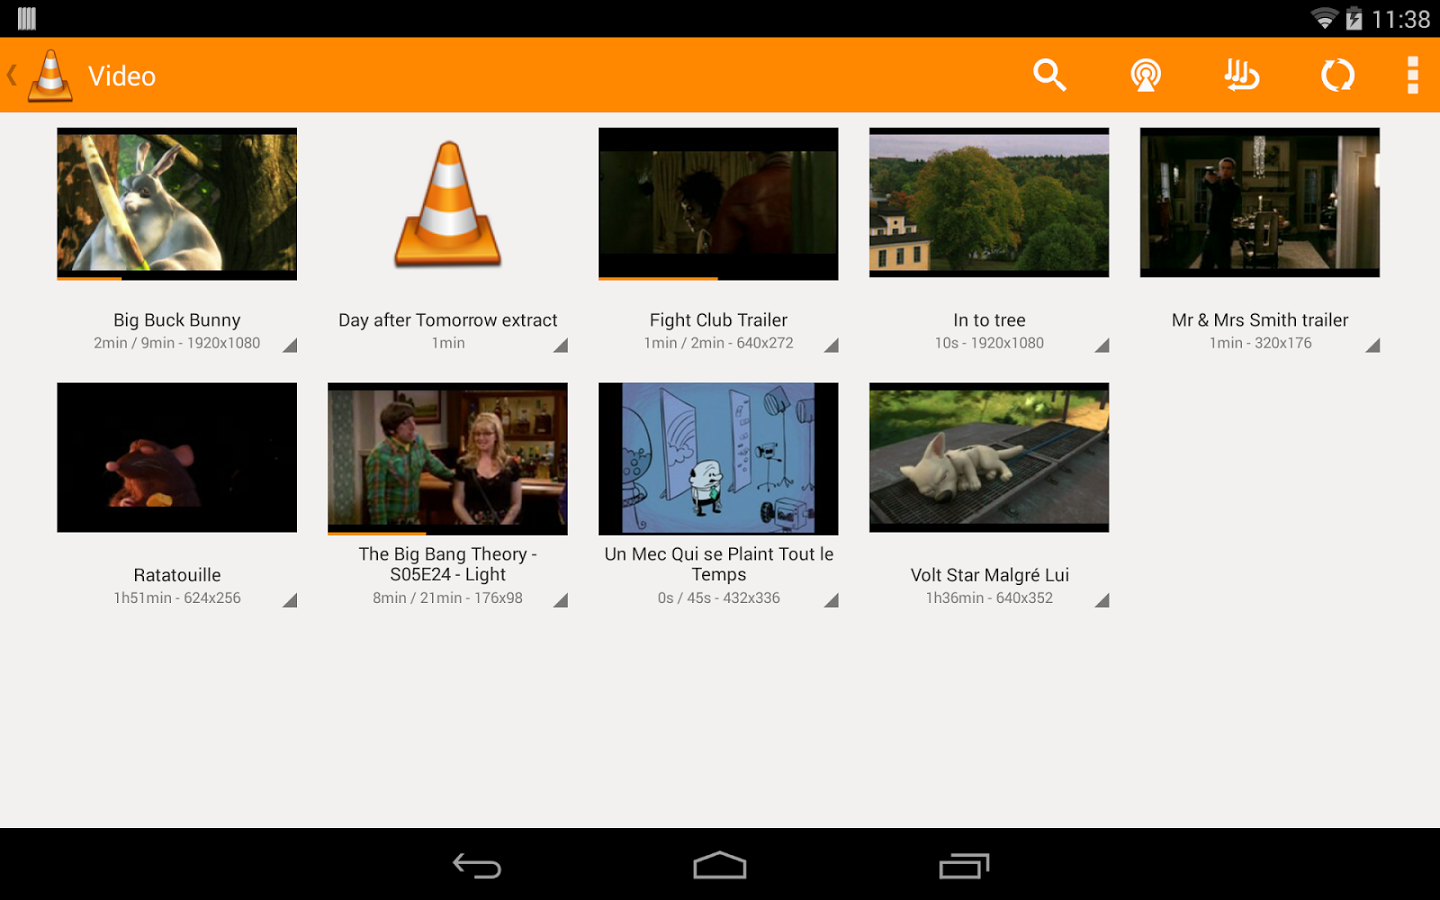 VLC 1 3 2 for Android brings background video play support